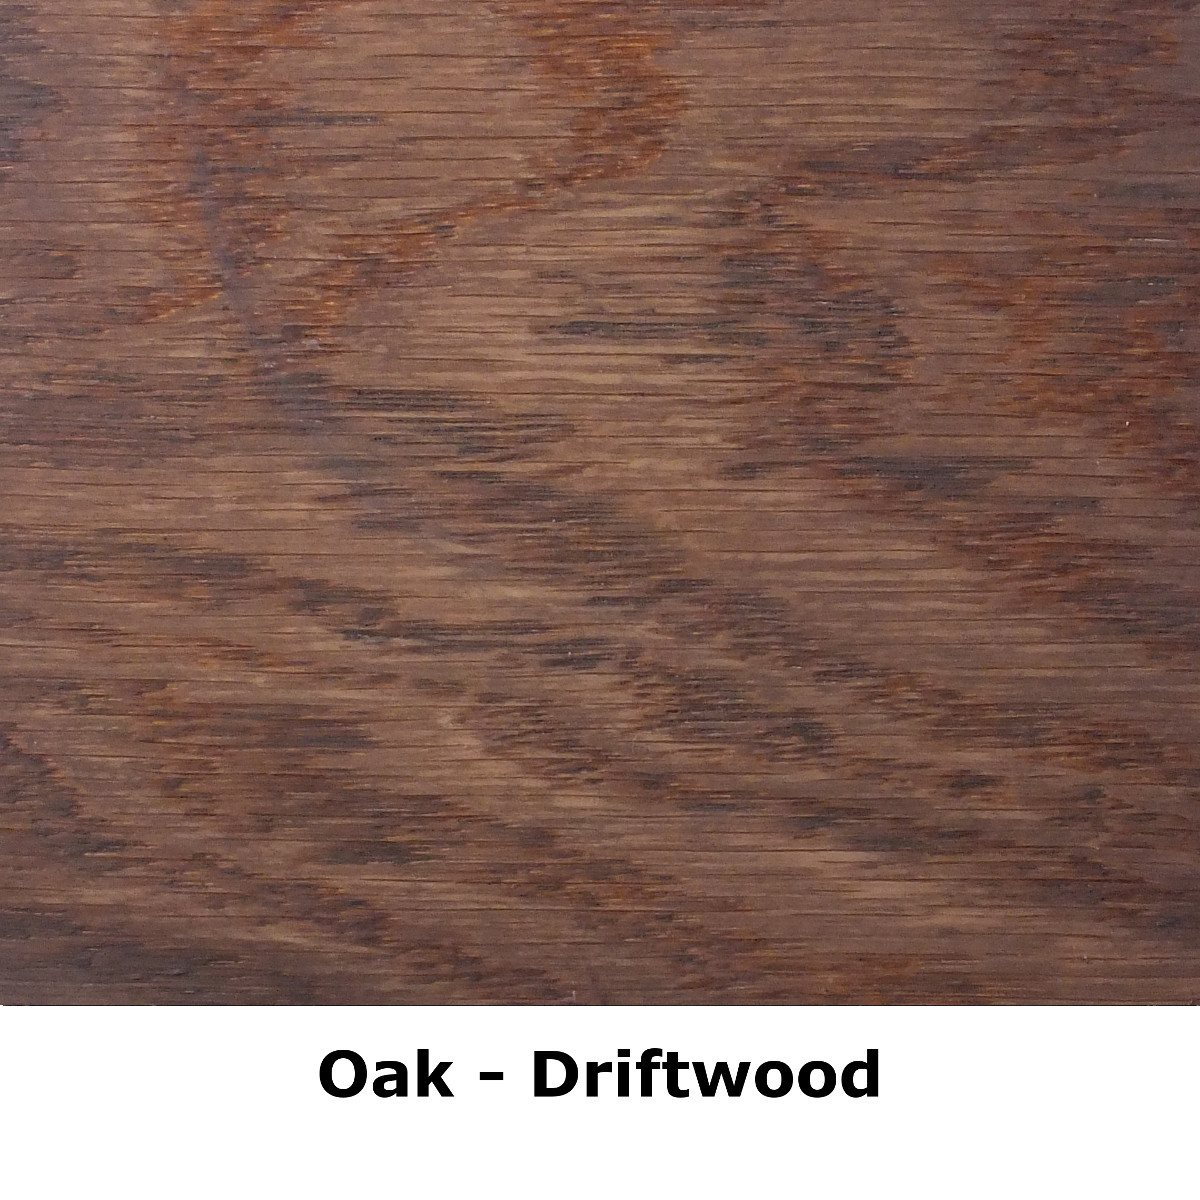 sq oak driftwood.jpeg